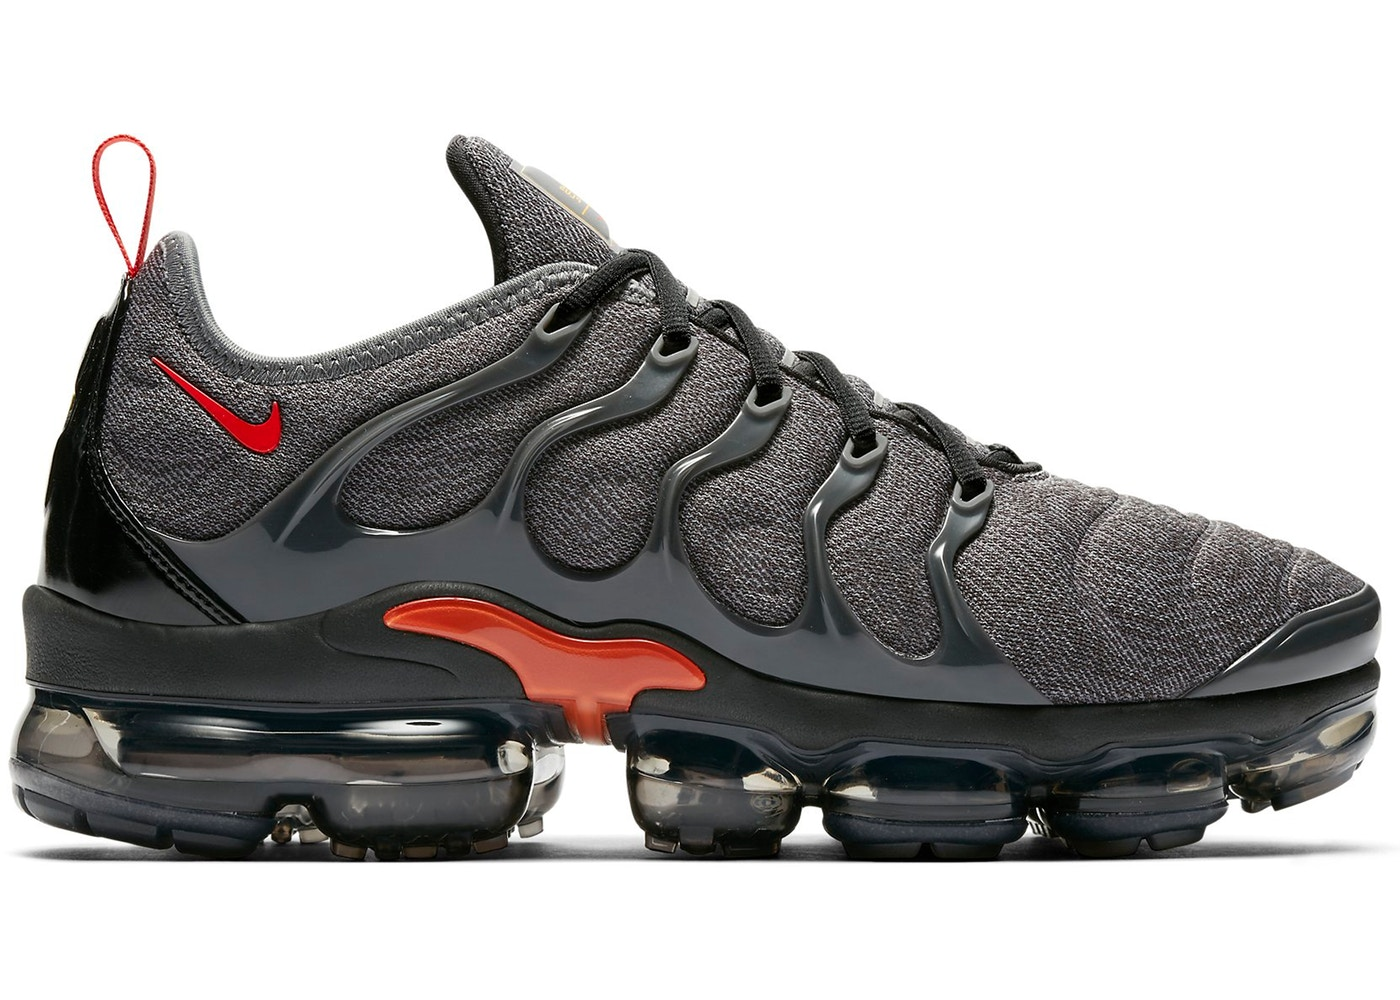 ナイキ NIKE エア クール 灰色 グレ チーム スニーカー 【 AIR TEAM VAPORMAX PLUS COOL GREY ORANGE UNIVERSITY GOLDANTHRACITETEAM 】 メンズ